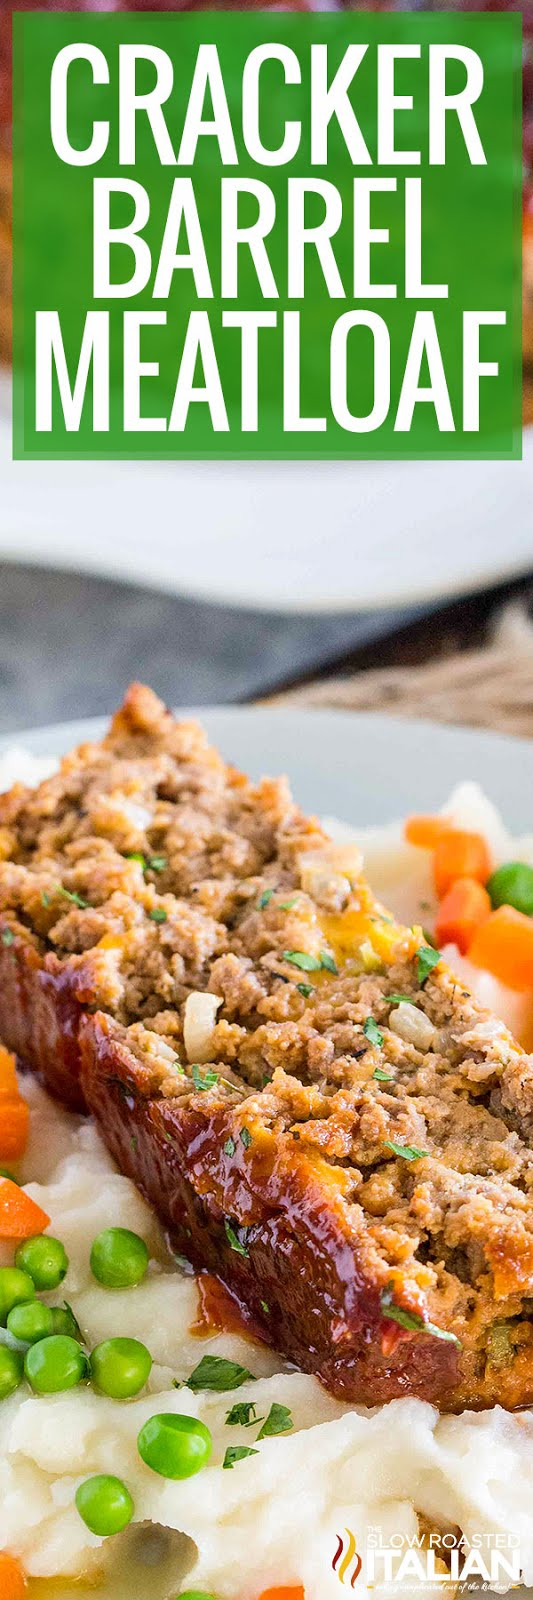 2 Lb Meatloaf Recipe With Crackers : meatloaf, recipe, crackers, Cracker, Barrel, Meatloaf, Recipe, Video